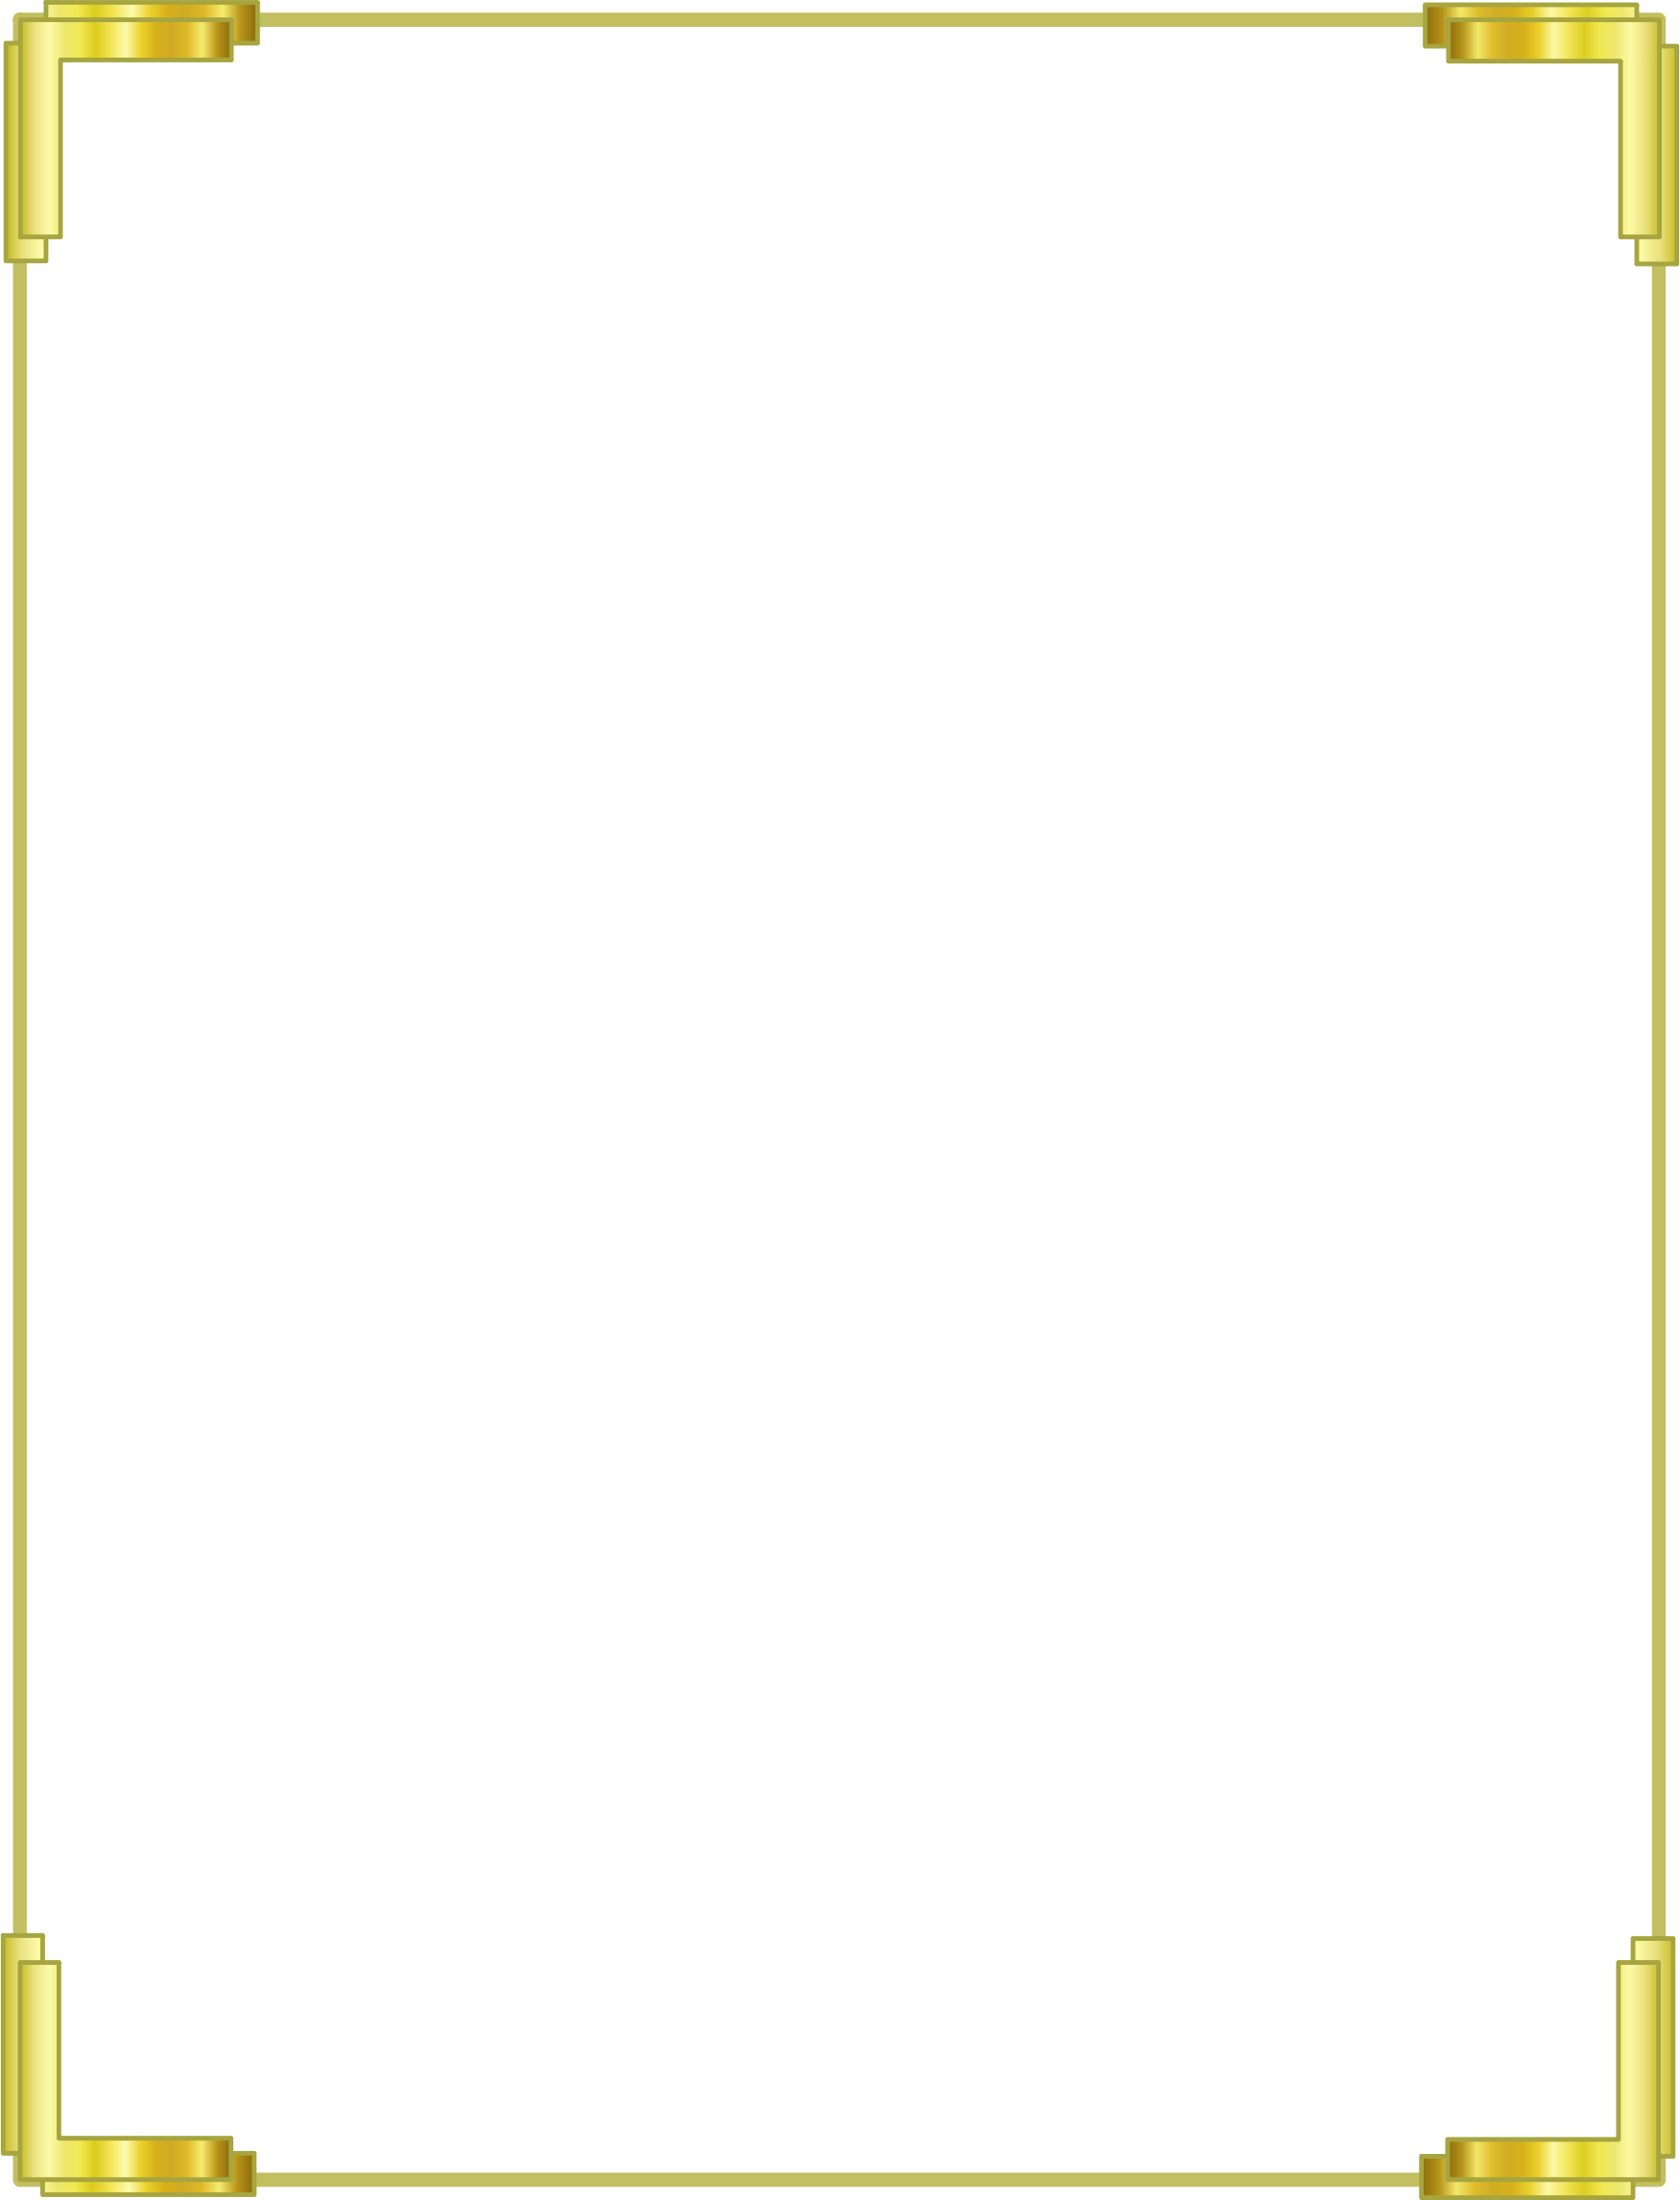 gold border, gold frame border download best gold frame border #25148